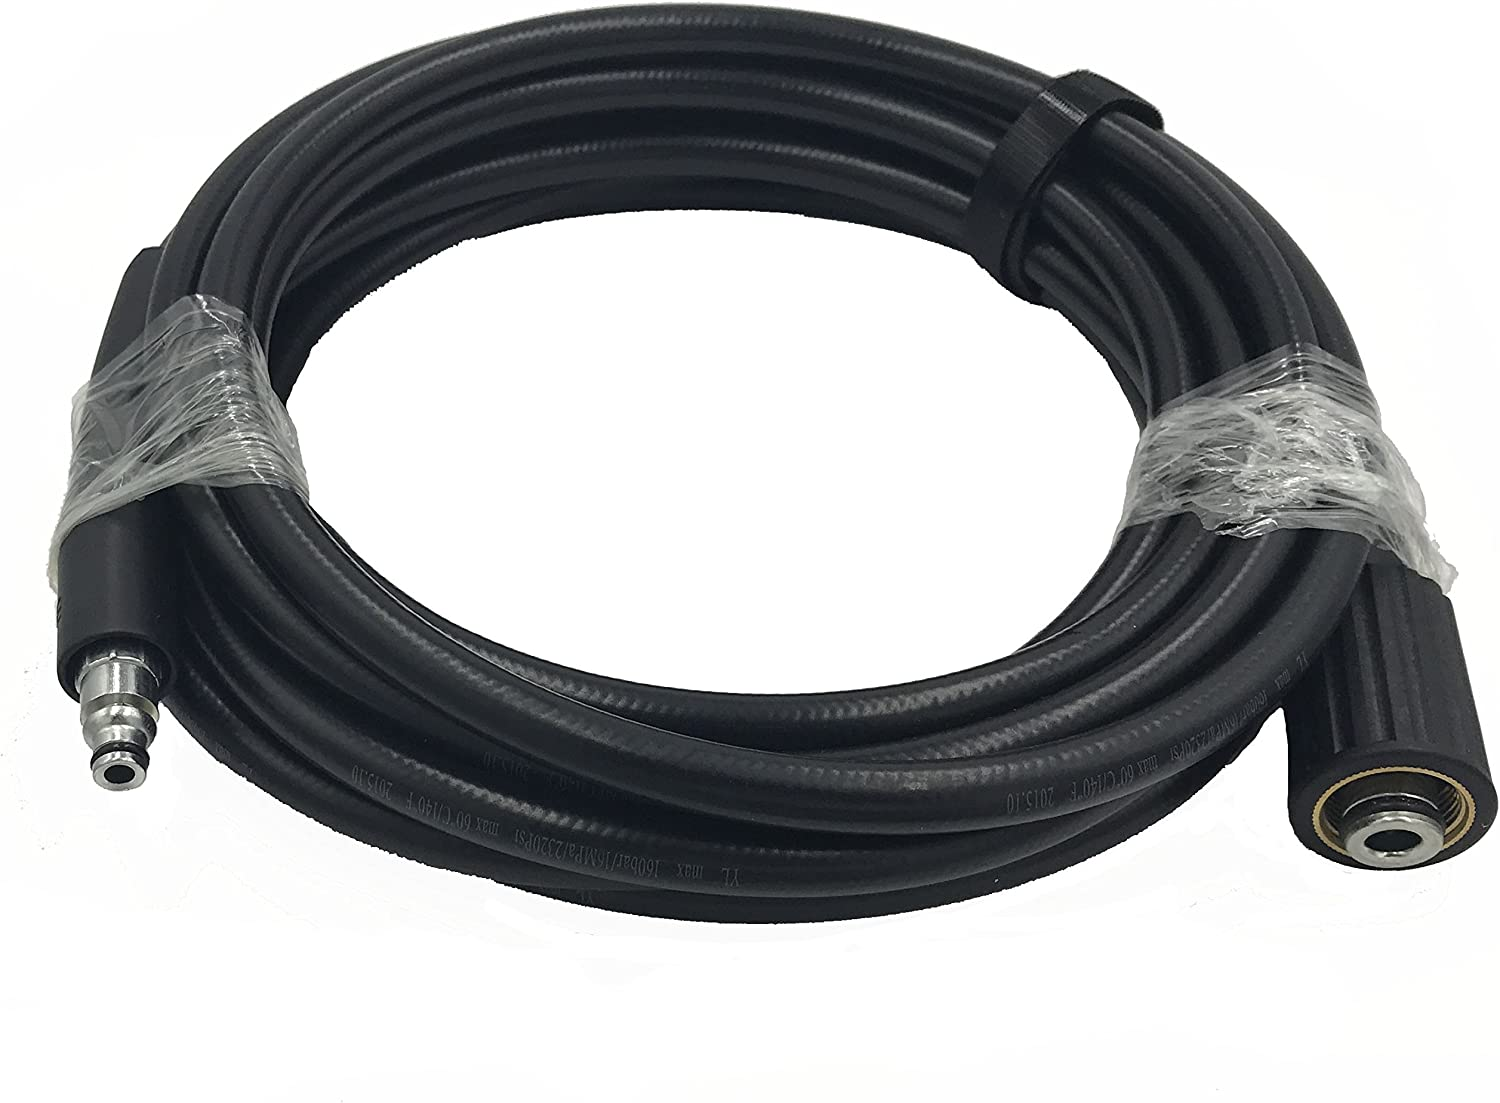 100 Series HP Replacement Hose 810zJkpewdL